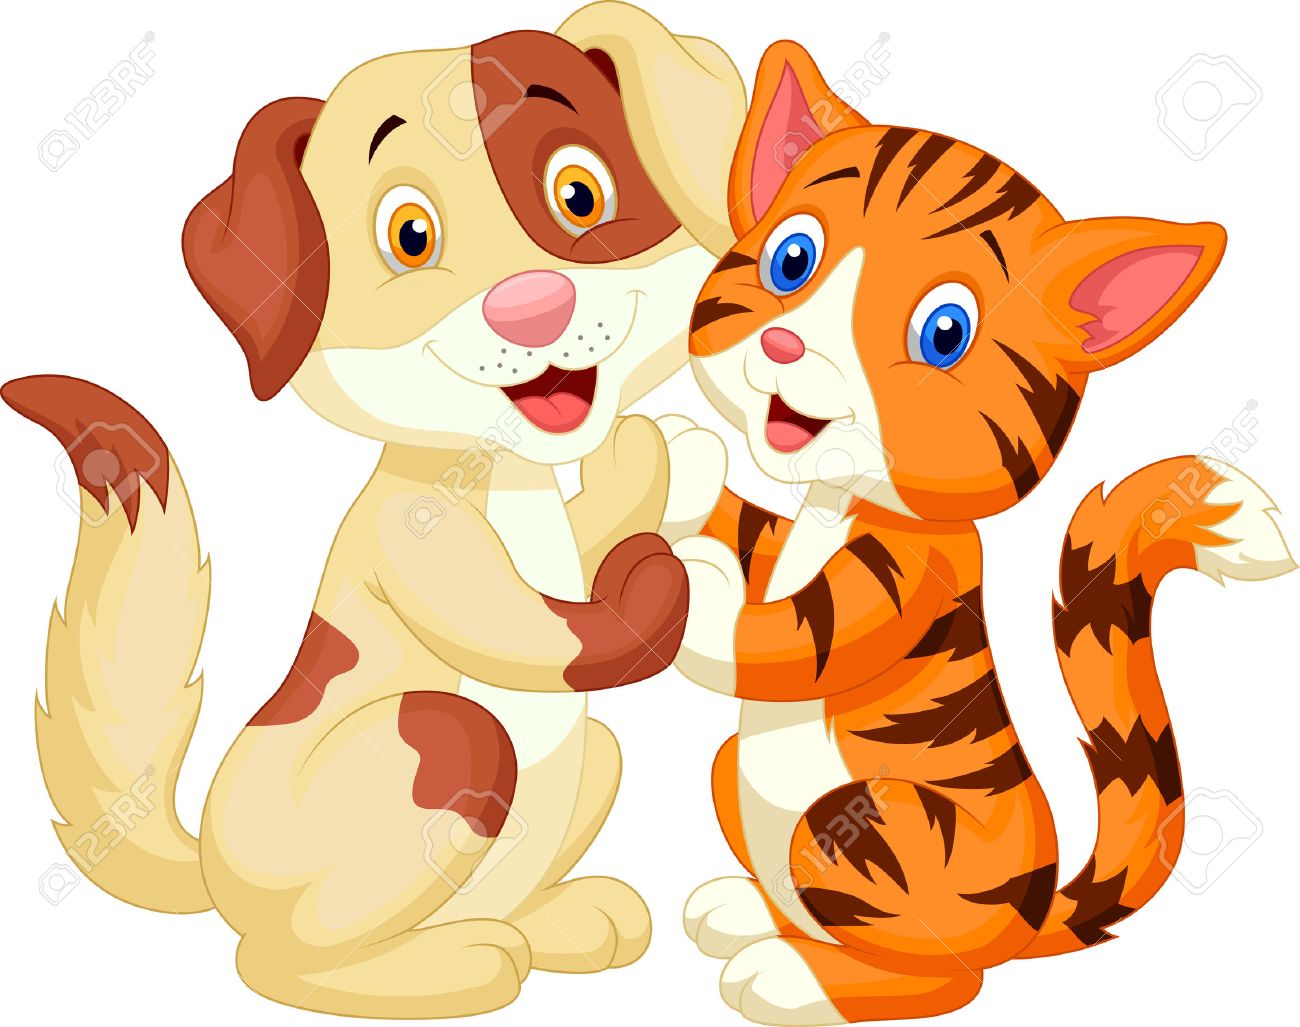 657 Dog And Cat Together Cliparts, Stock Vector And Royalty Free ...